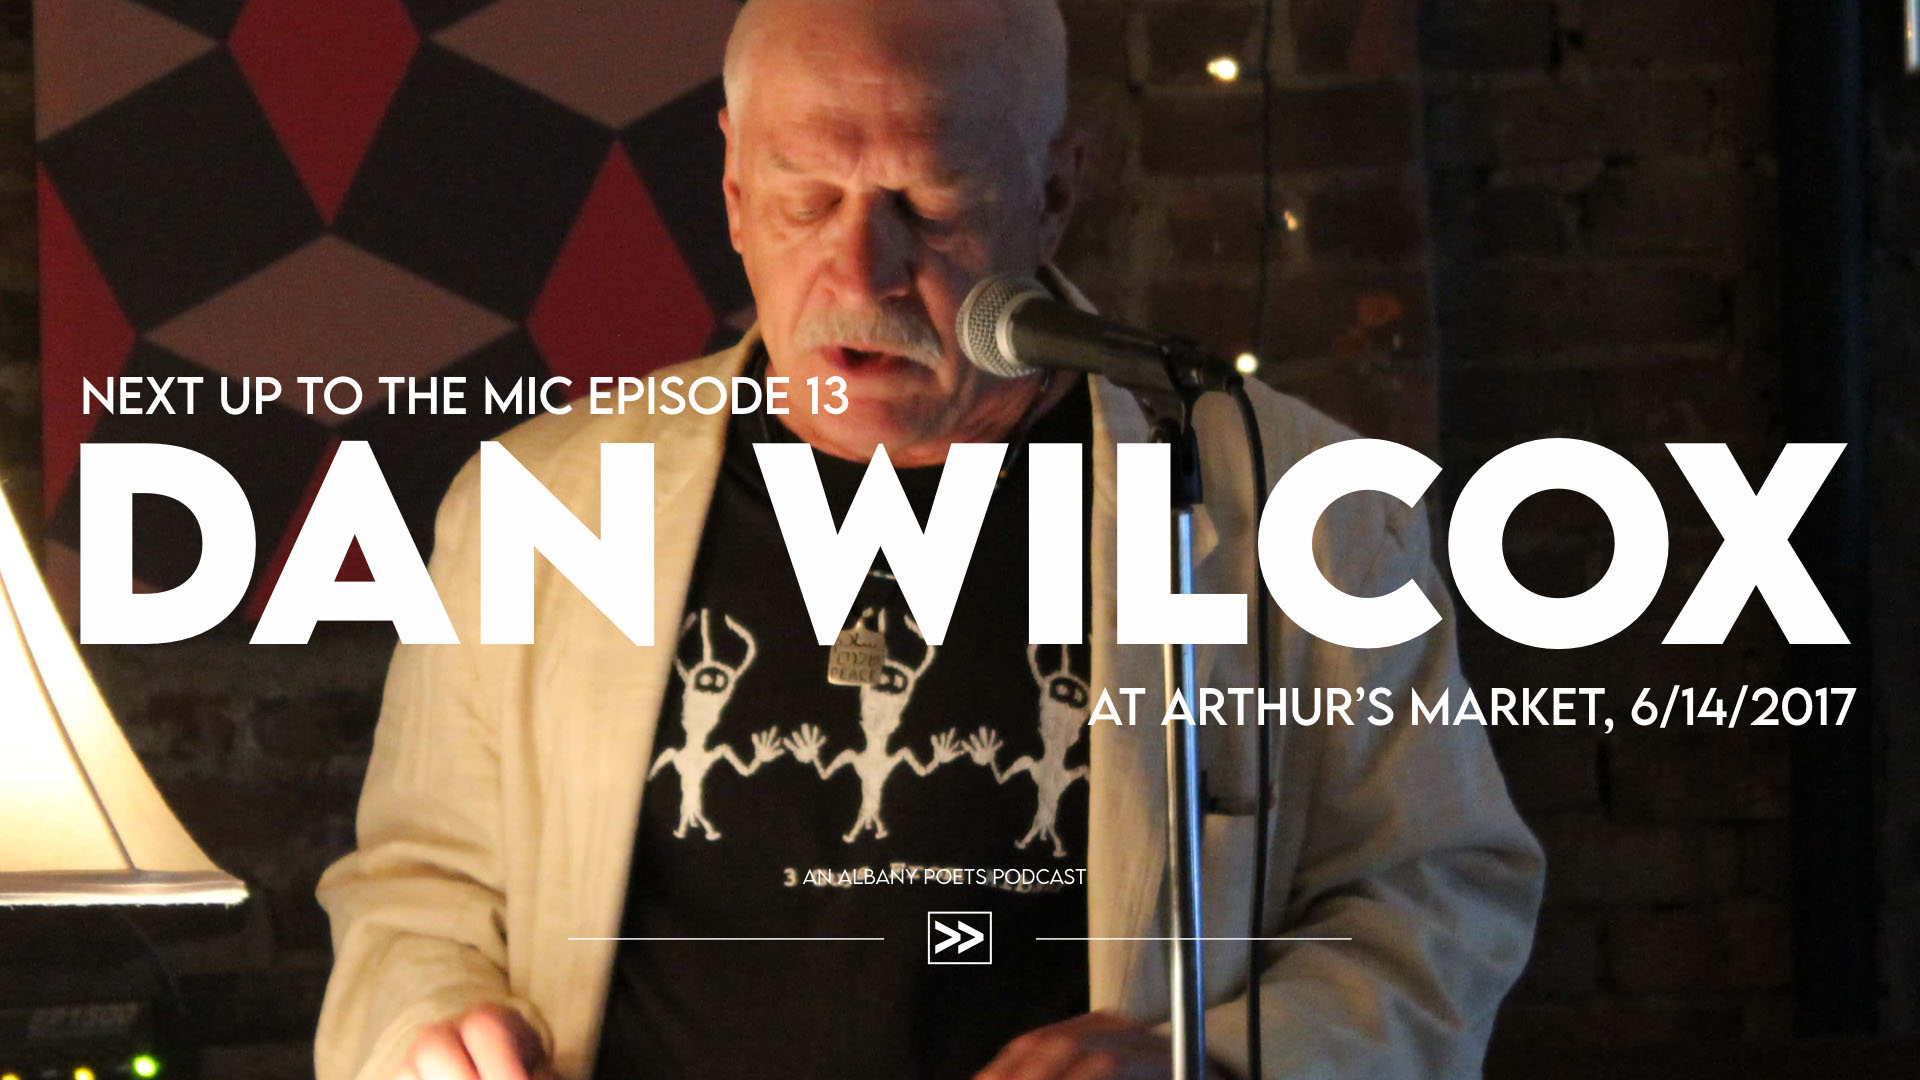 Next Up to The Mic Episode 13: Dan Wilcox at Arthur's Market